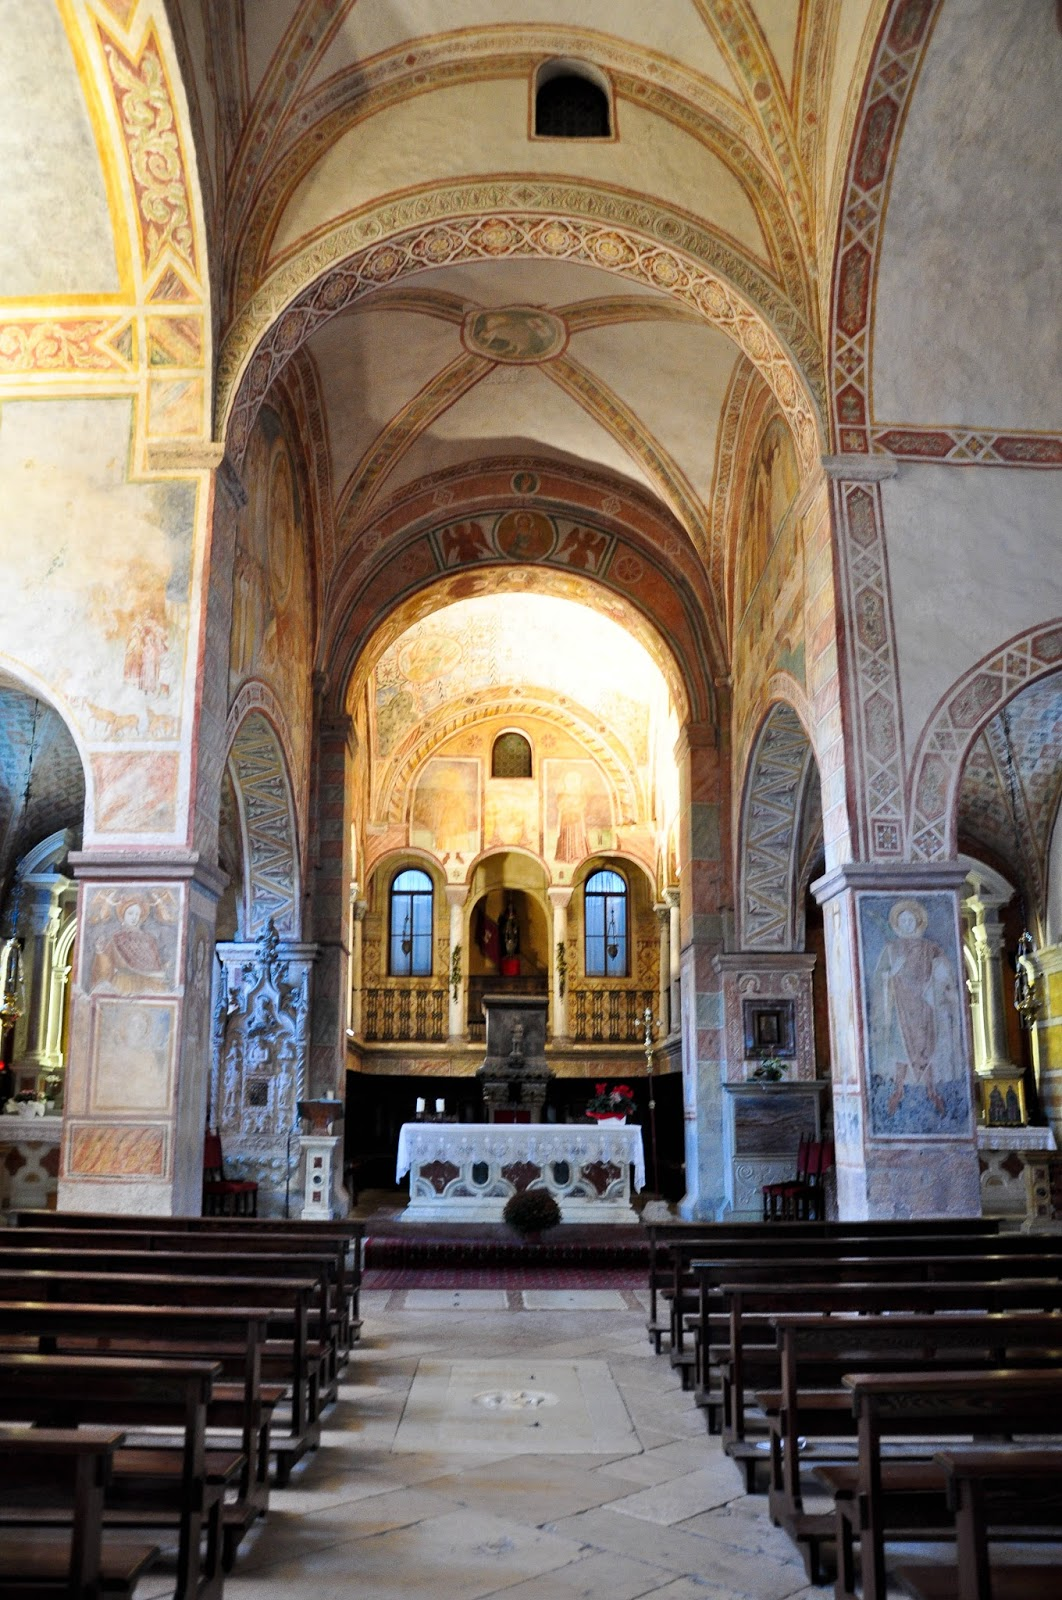 Inside the church, Sanctuary of St. St. Vittore e Corona, Feltre, Veneto, Italy